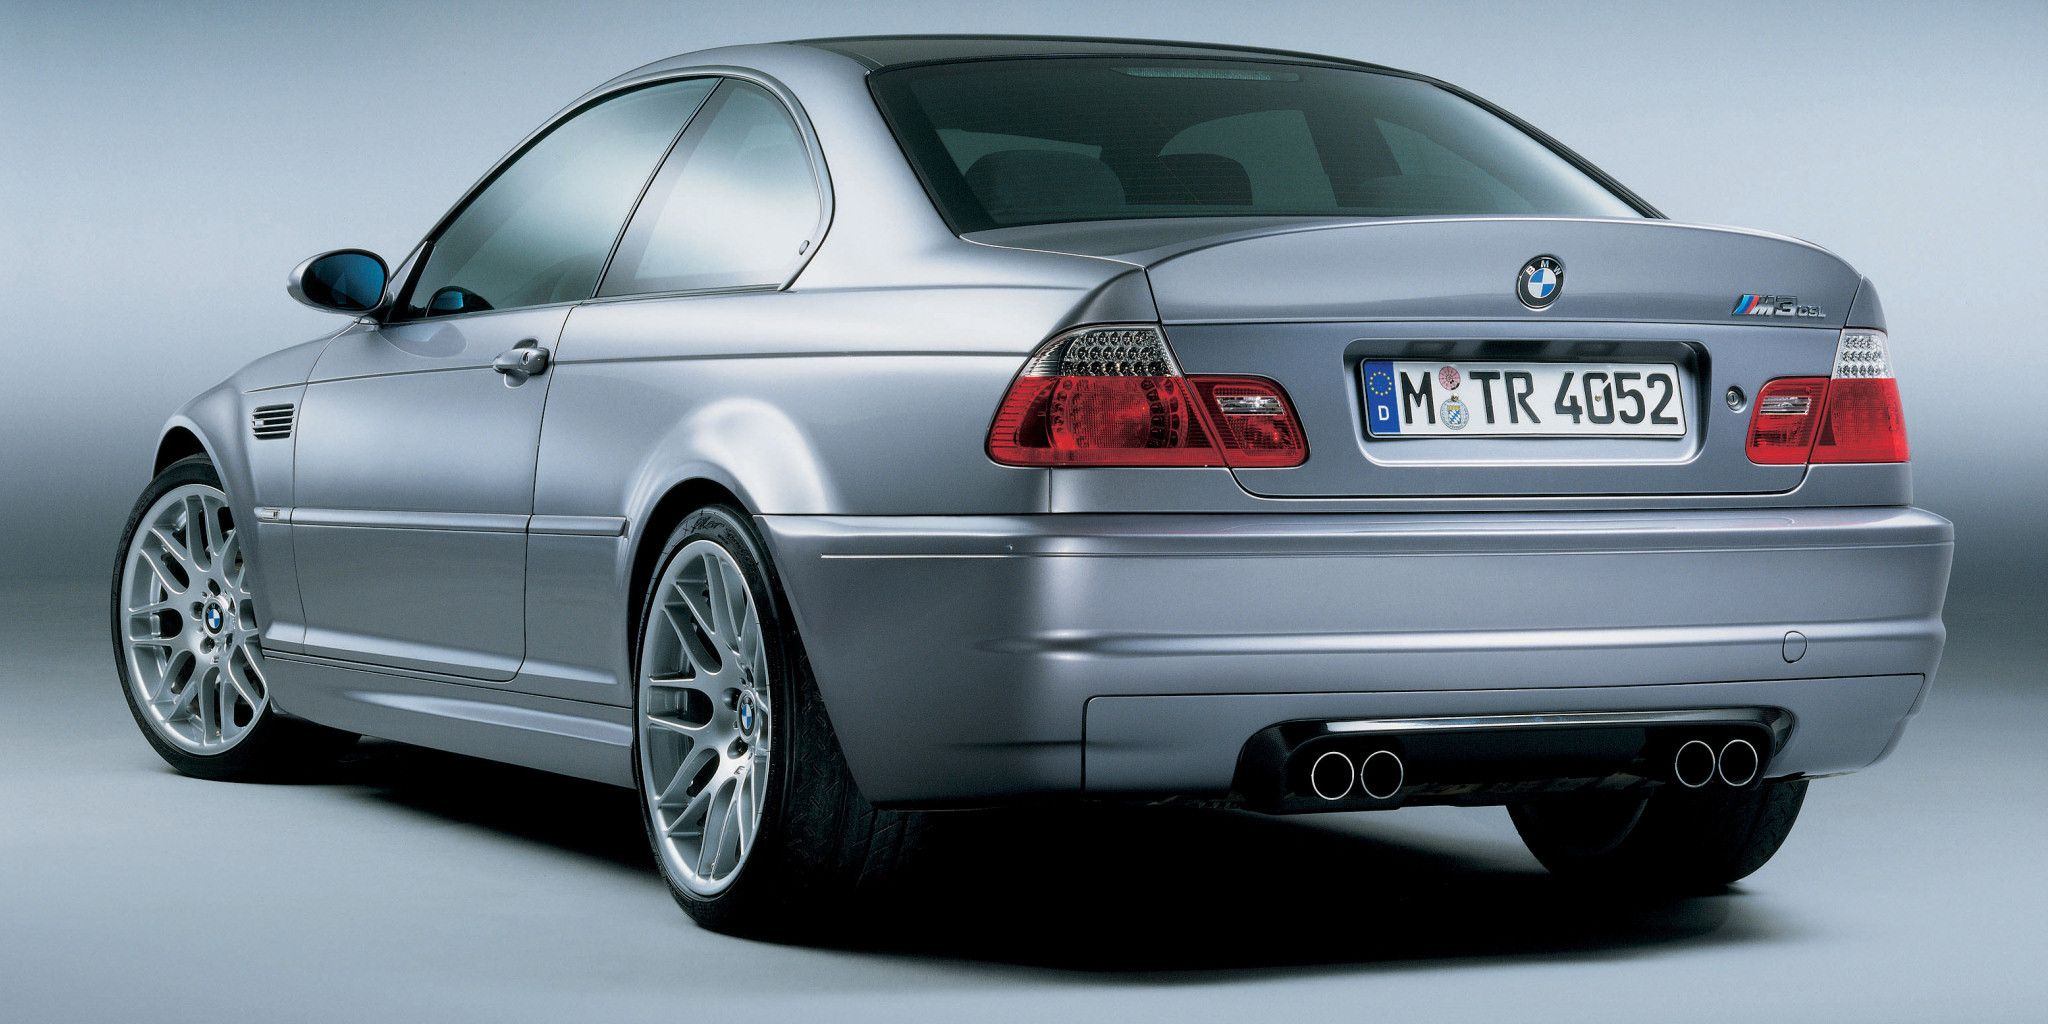 The Name That Adorned Two Of BMWu0027s Greatest Creations, The 3.0 CSL And The  E46 M3 CSL, Will Be Applied To Future M Cars. We Hope That Means Weu0027ll See  An M2 ...